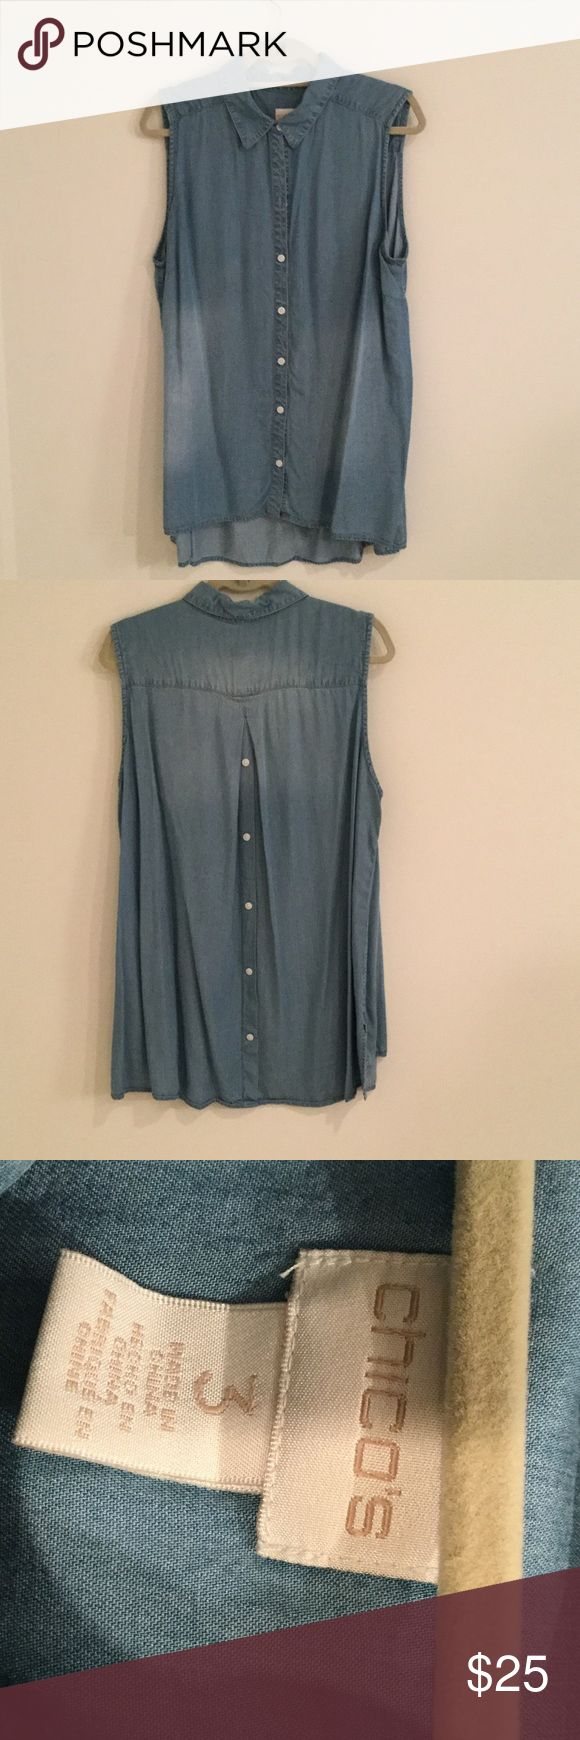 Chicos size 3 sleeveless long shirt Chicos Size 3 (16/18) Sleeveless jean color top with pleaded buttons on the back looks great with the pair jeans incredibly comfortable Chico's Tops